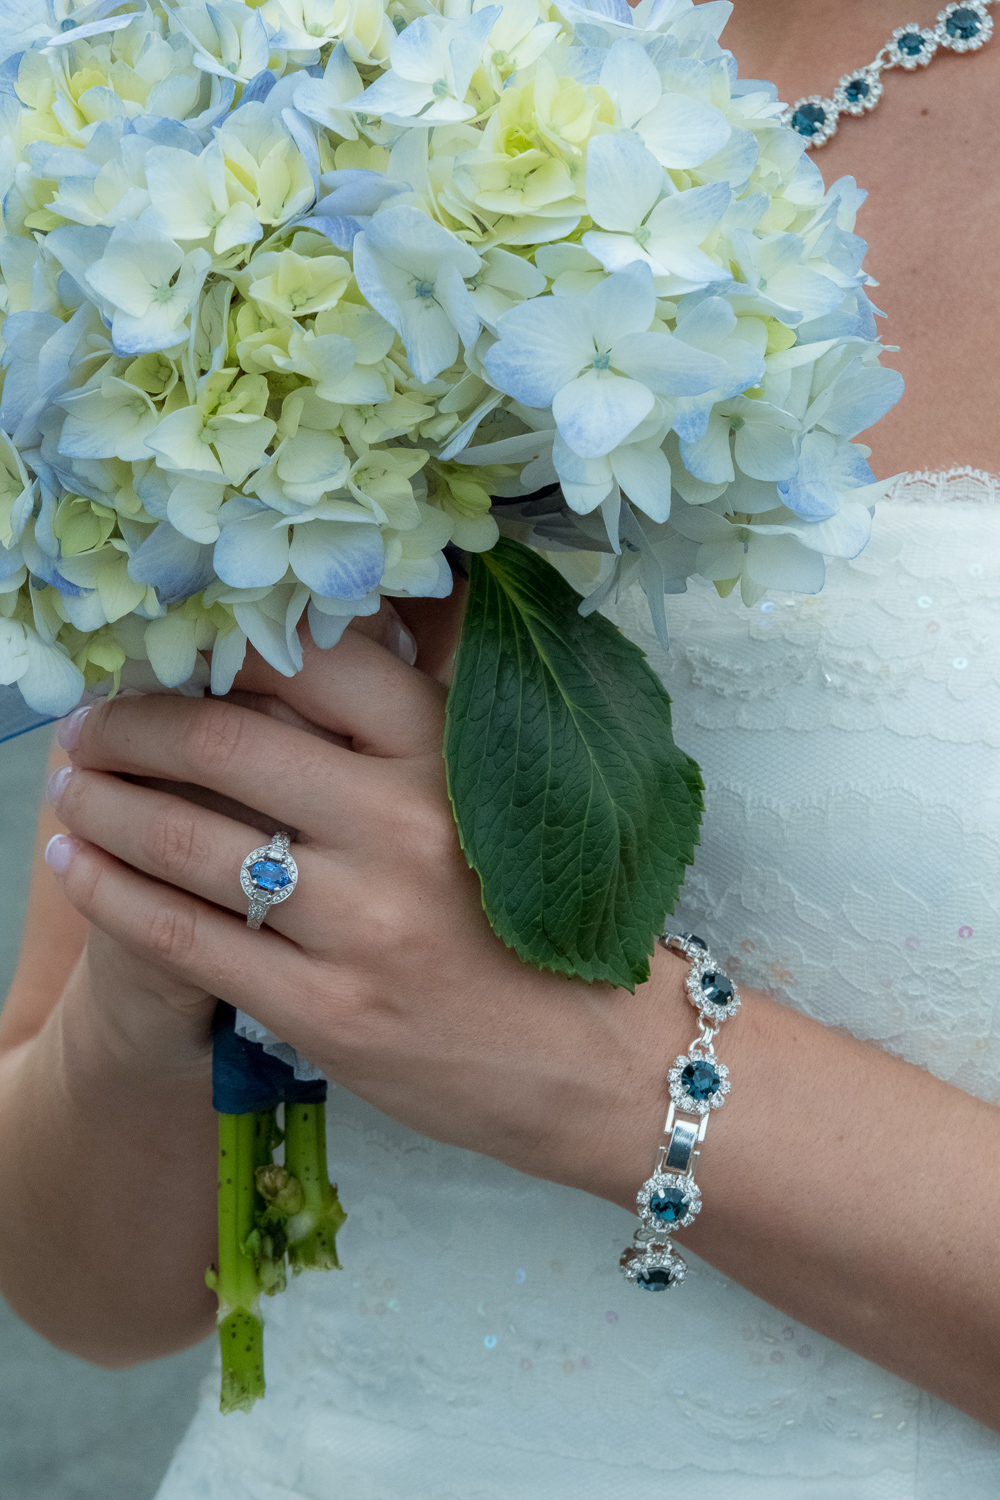 Stunning blue jewelry details in ring and bracelet